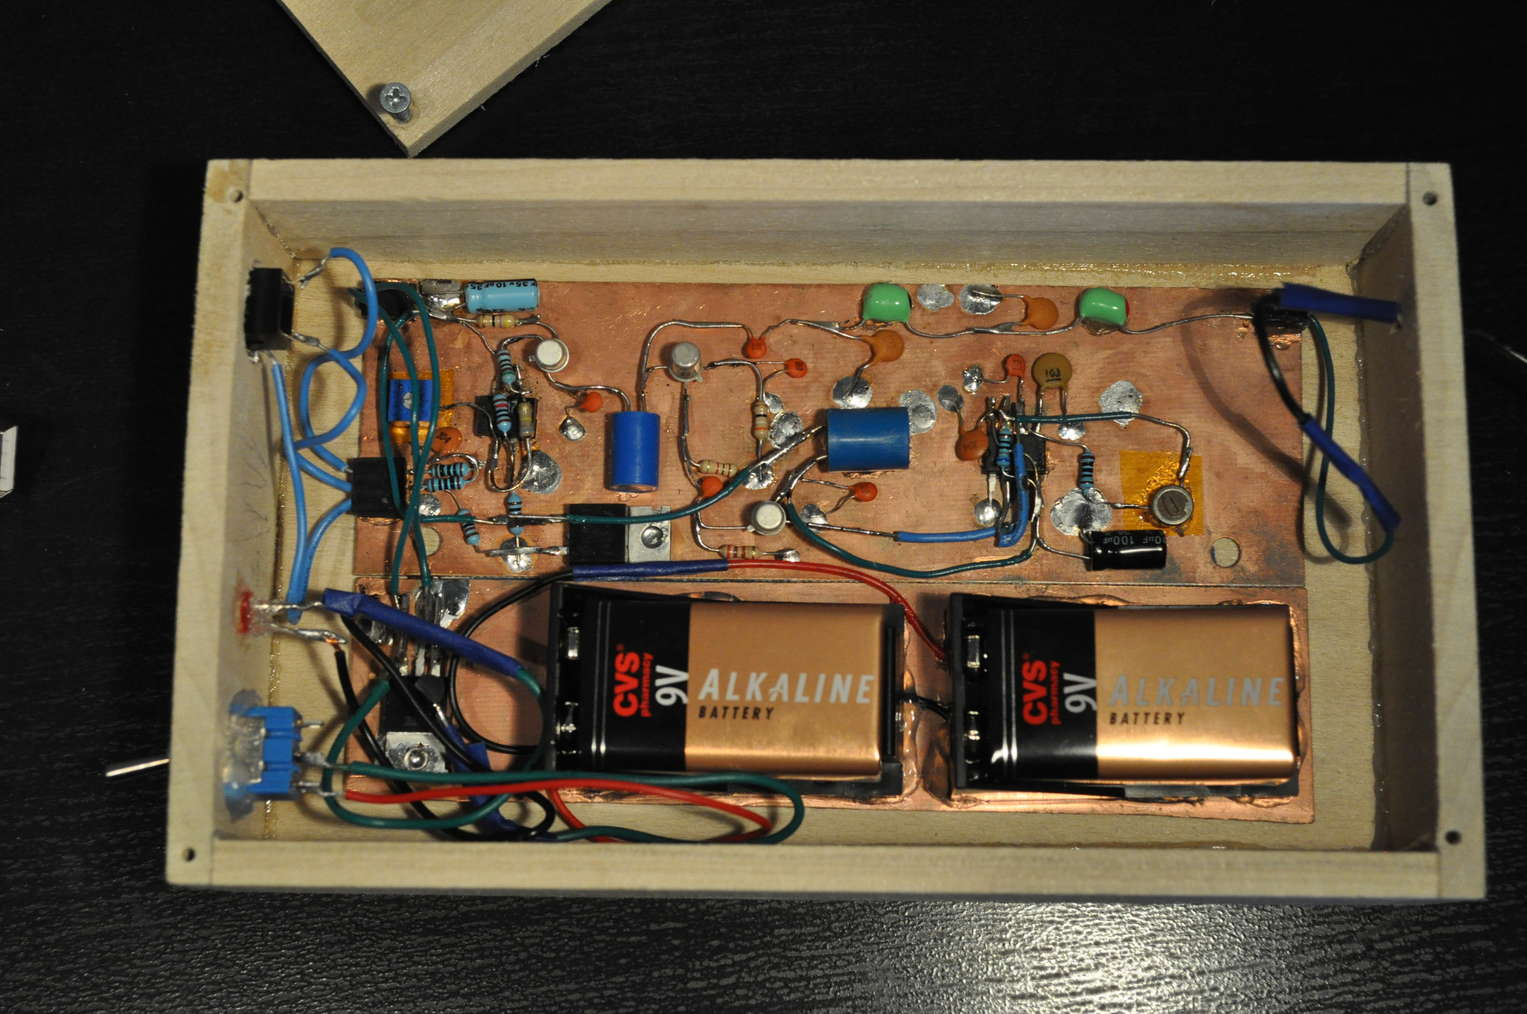 An Am Radio Transmitter Circuit Inside The Without Antenna